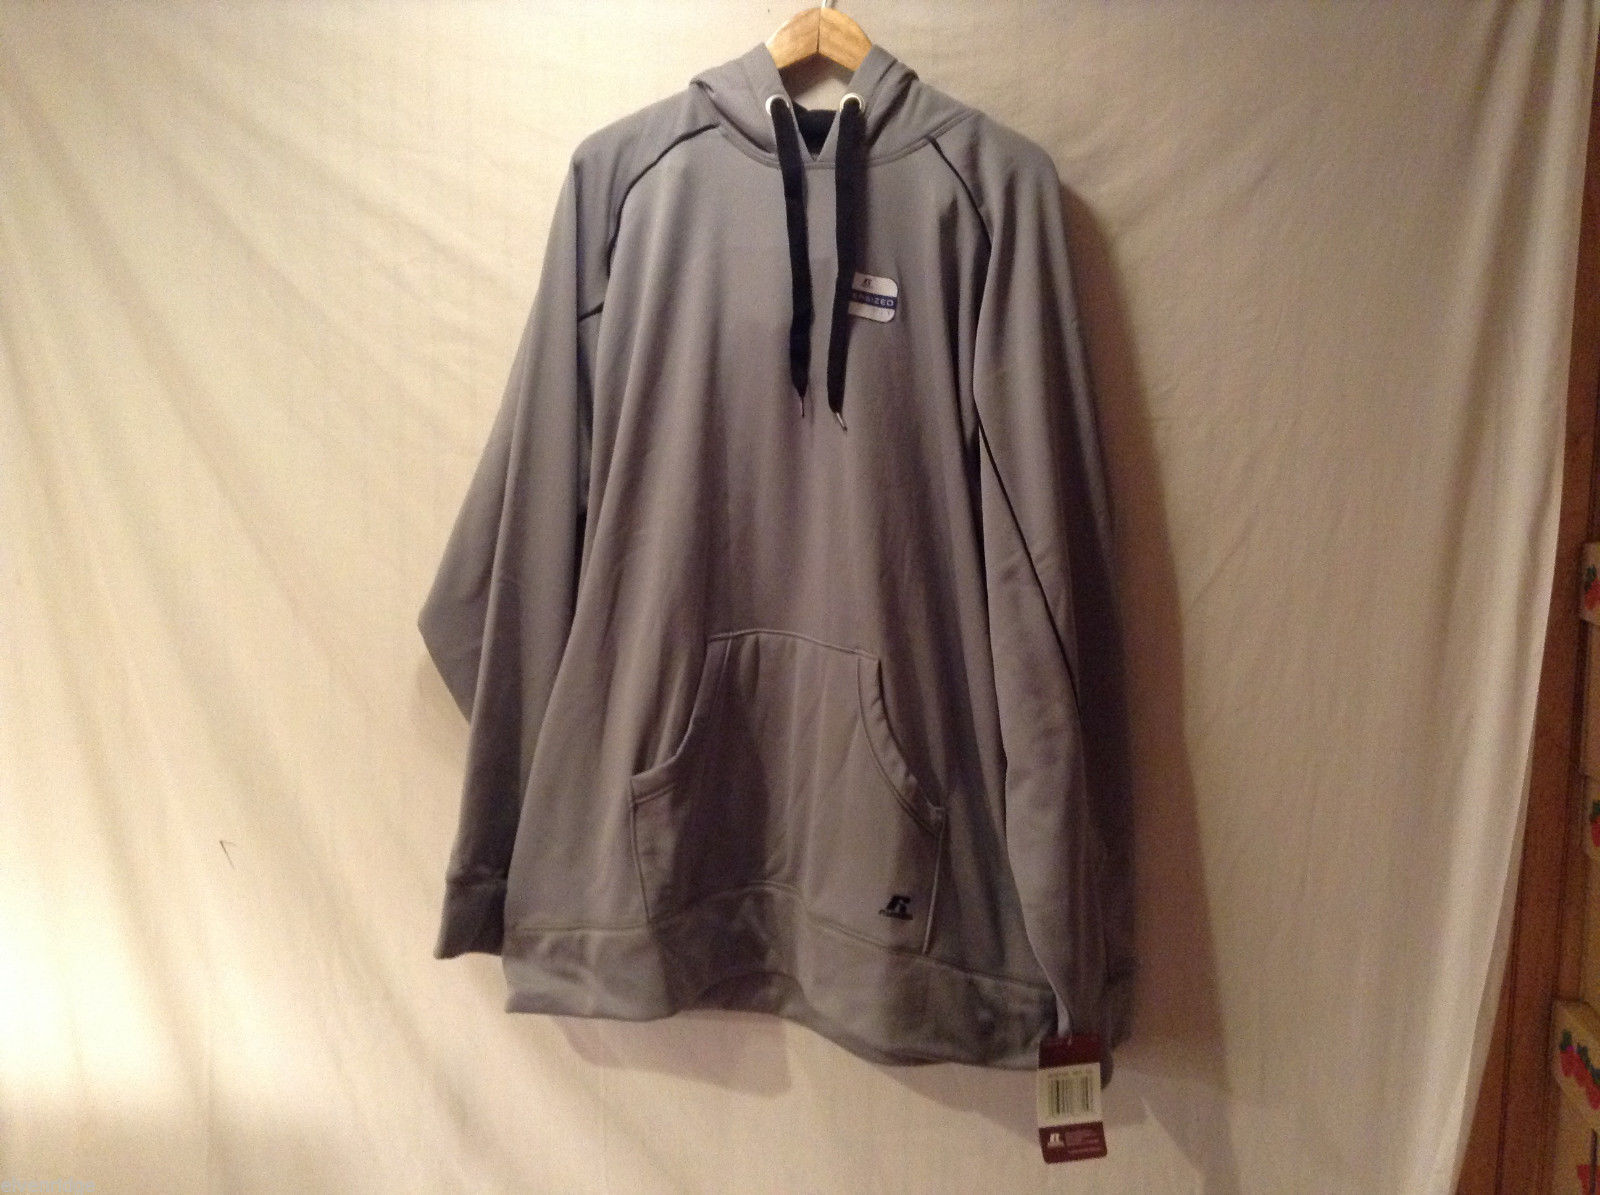 Russell Athletic Gray Hoodie Sweatshirt Front Pouch, Size XXL, Dry Power System